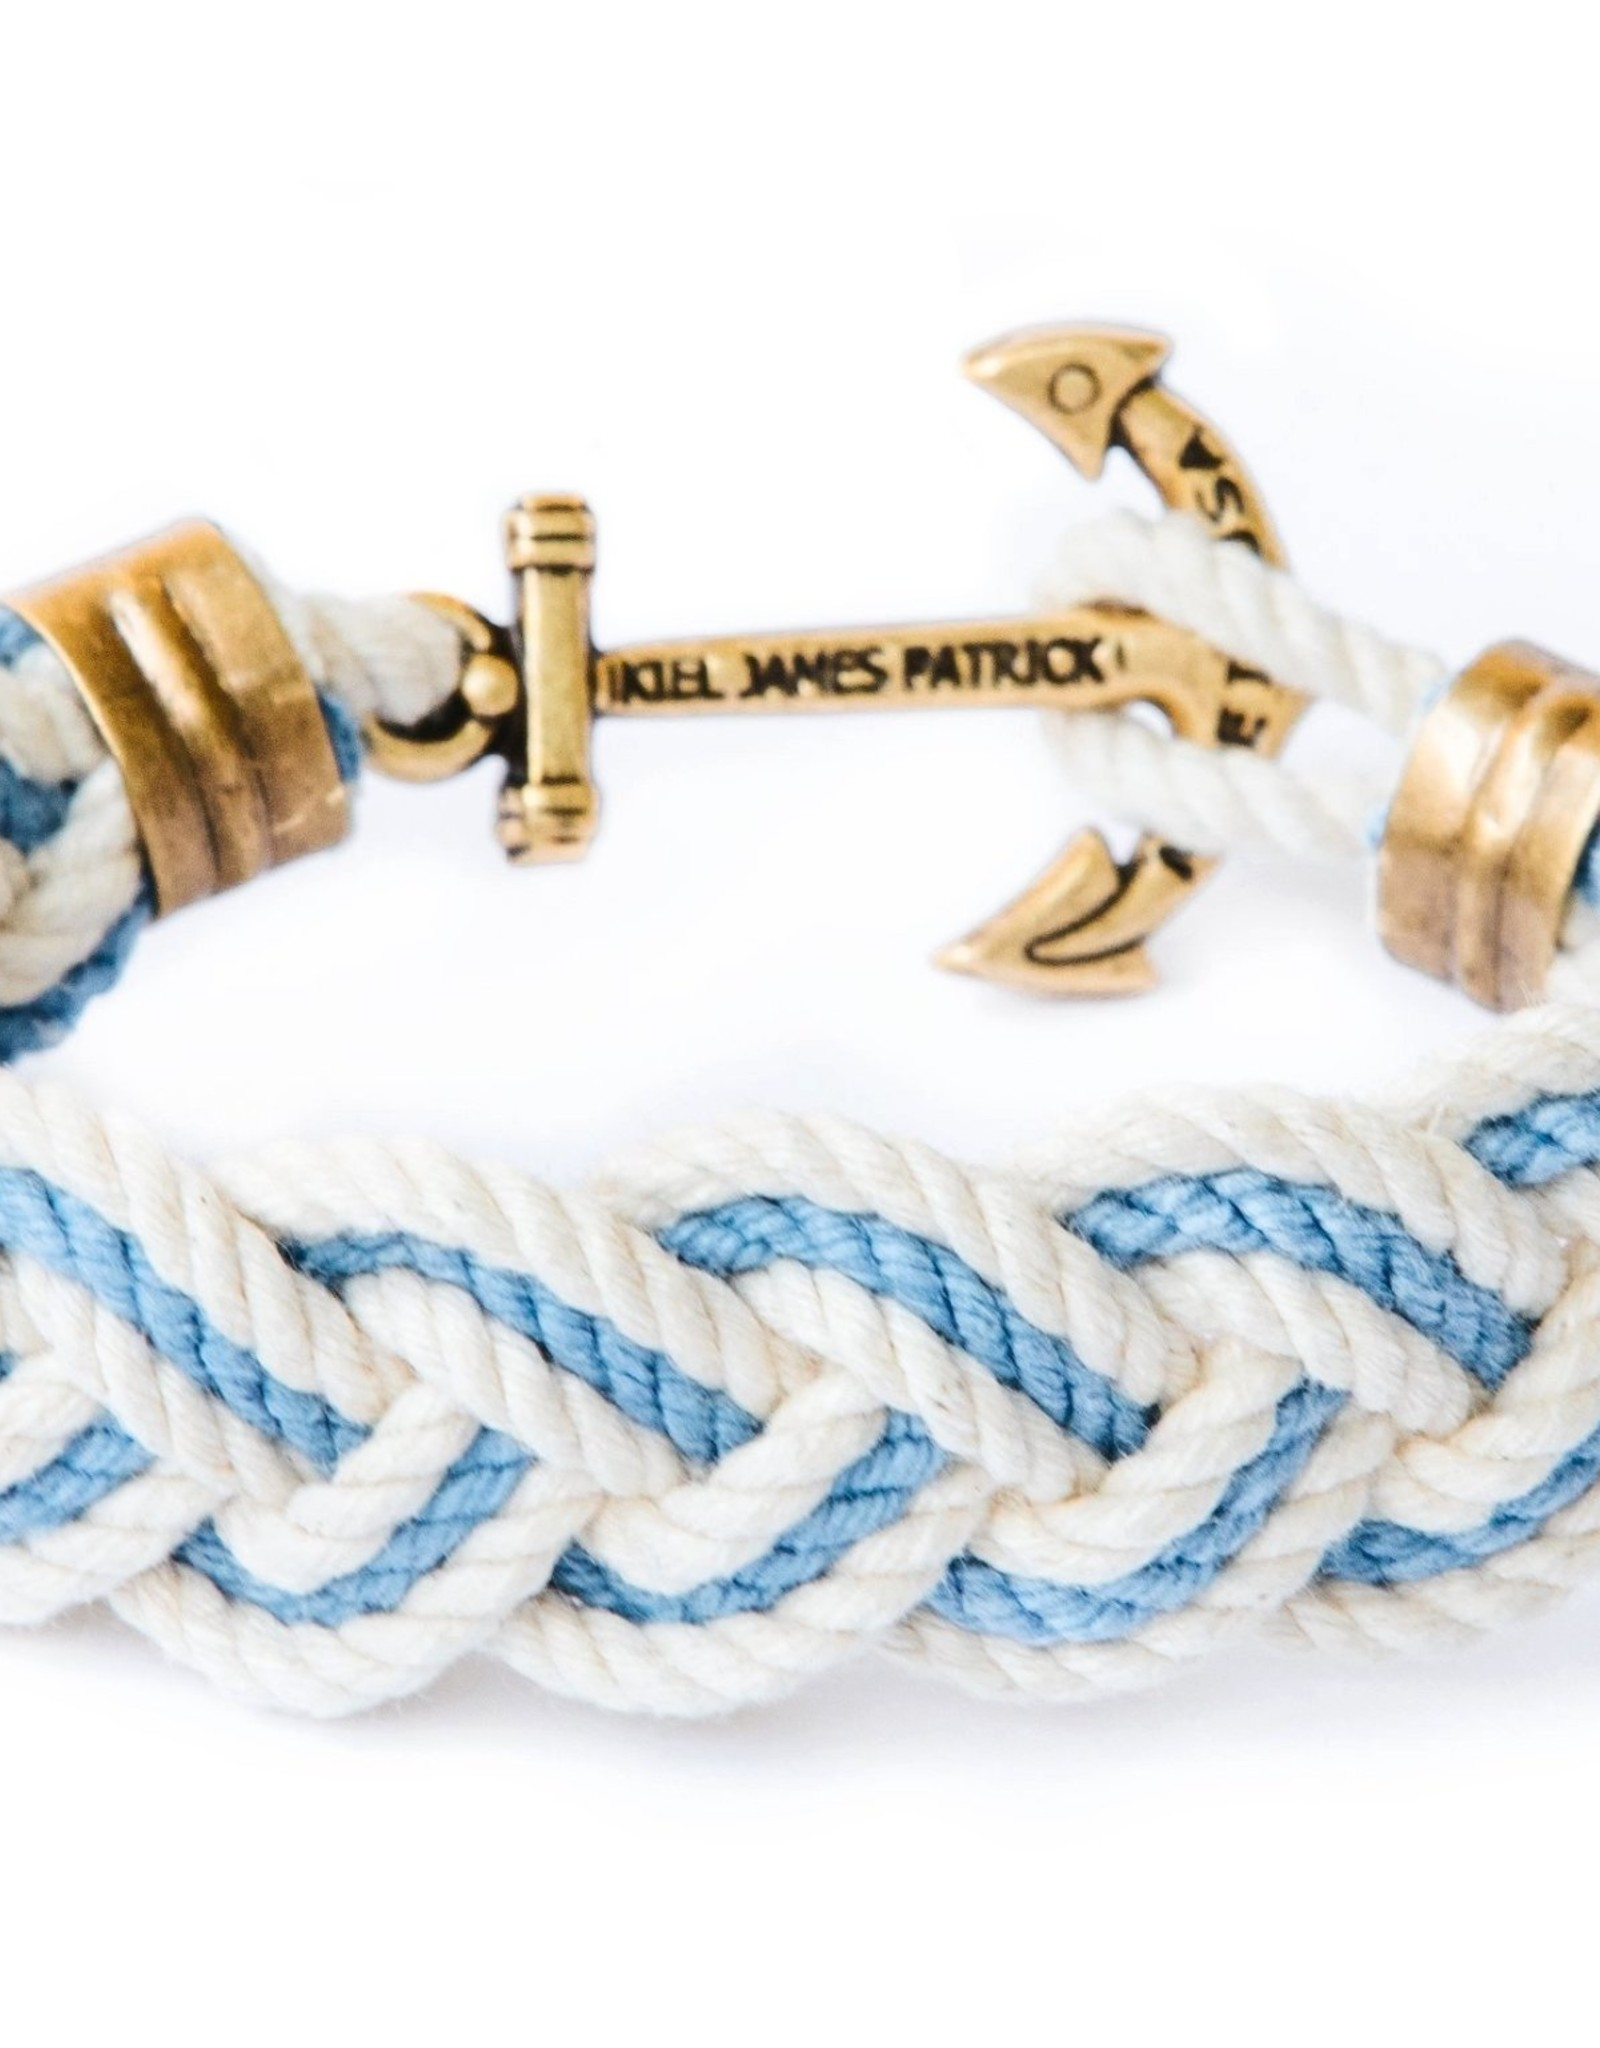 Kiel James Patrick Mackerel Cove Bracelet